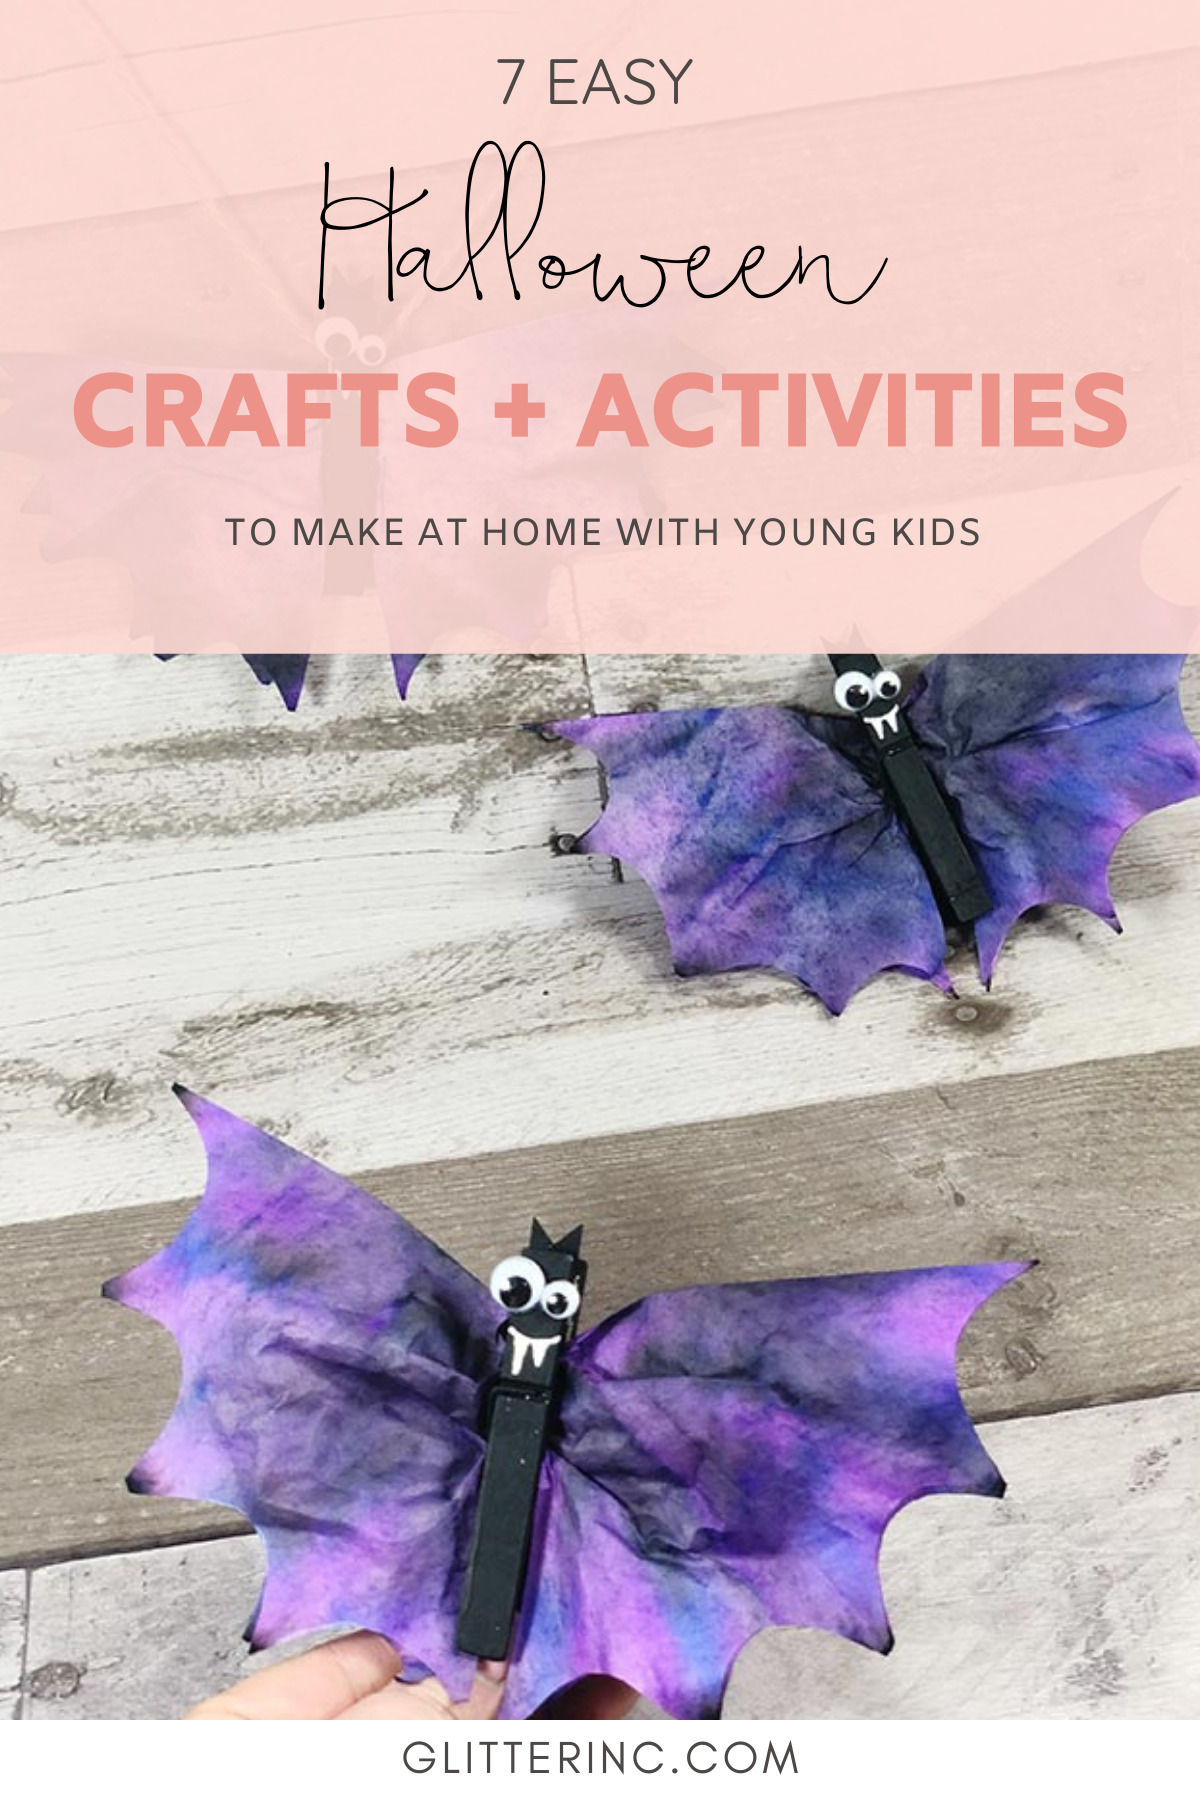 Get crafty this October and create something special with one of these 7 easy Halloween crafts and hands-on activities for toddlers and young kids! | @glitterinclexi | GLITTERINC.COM